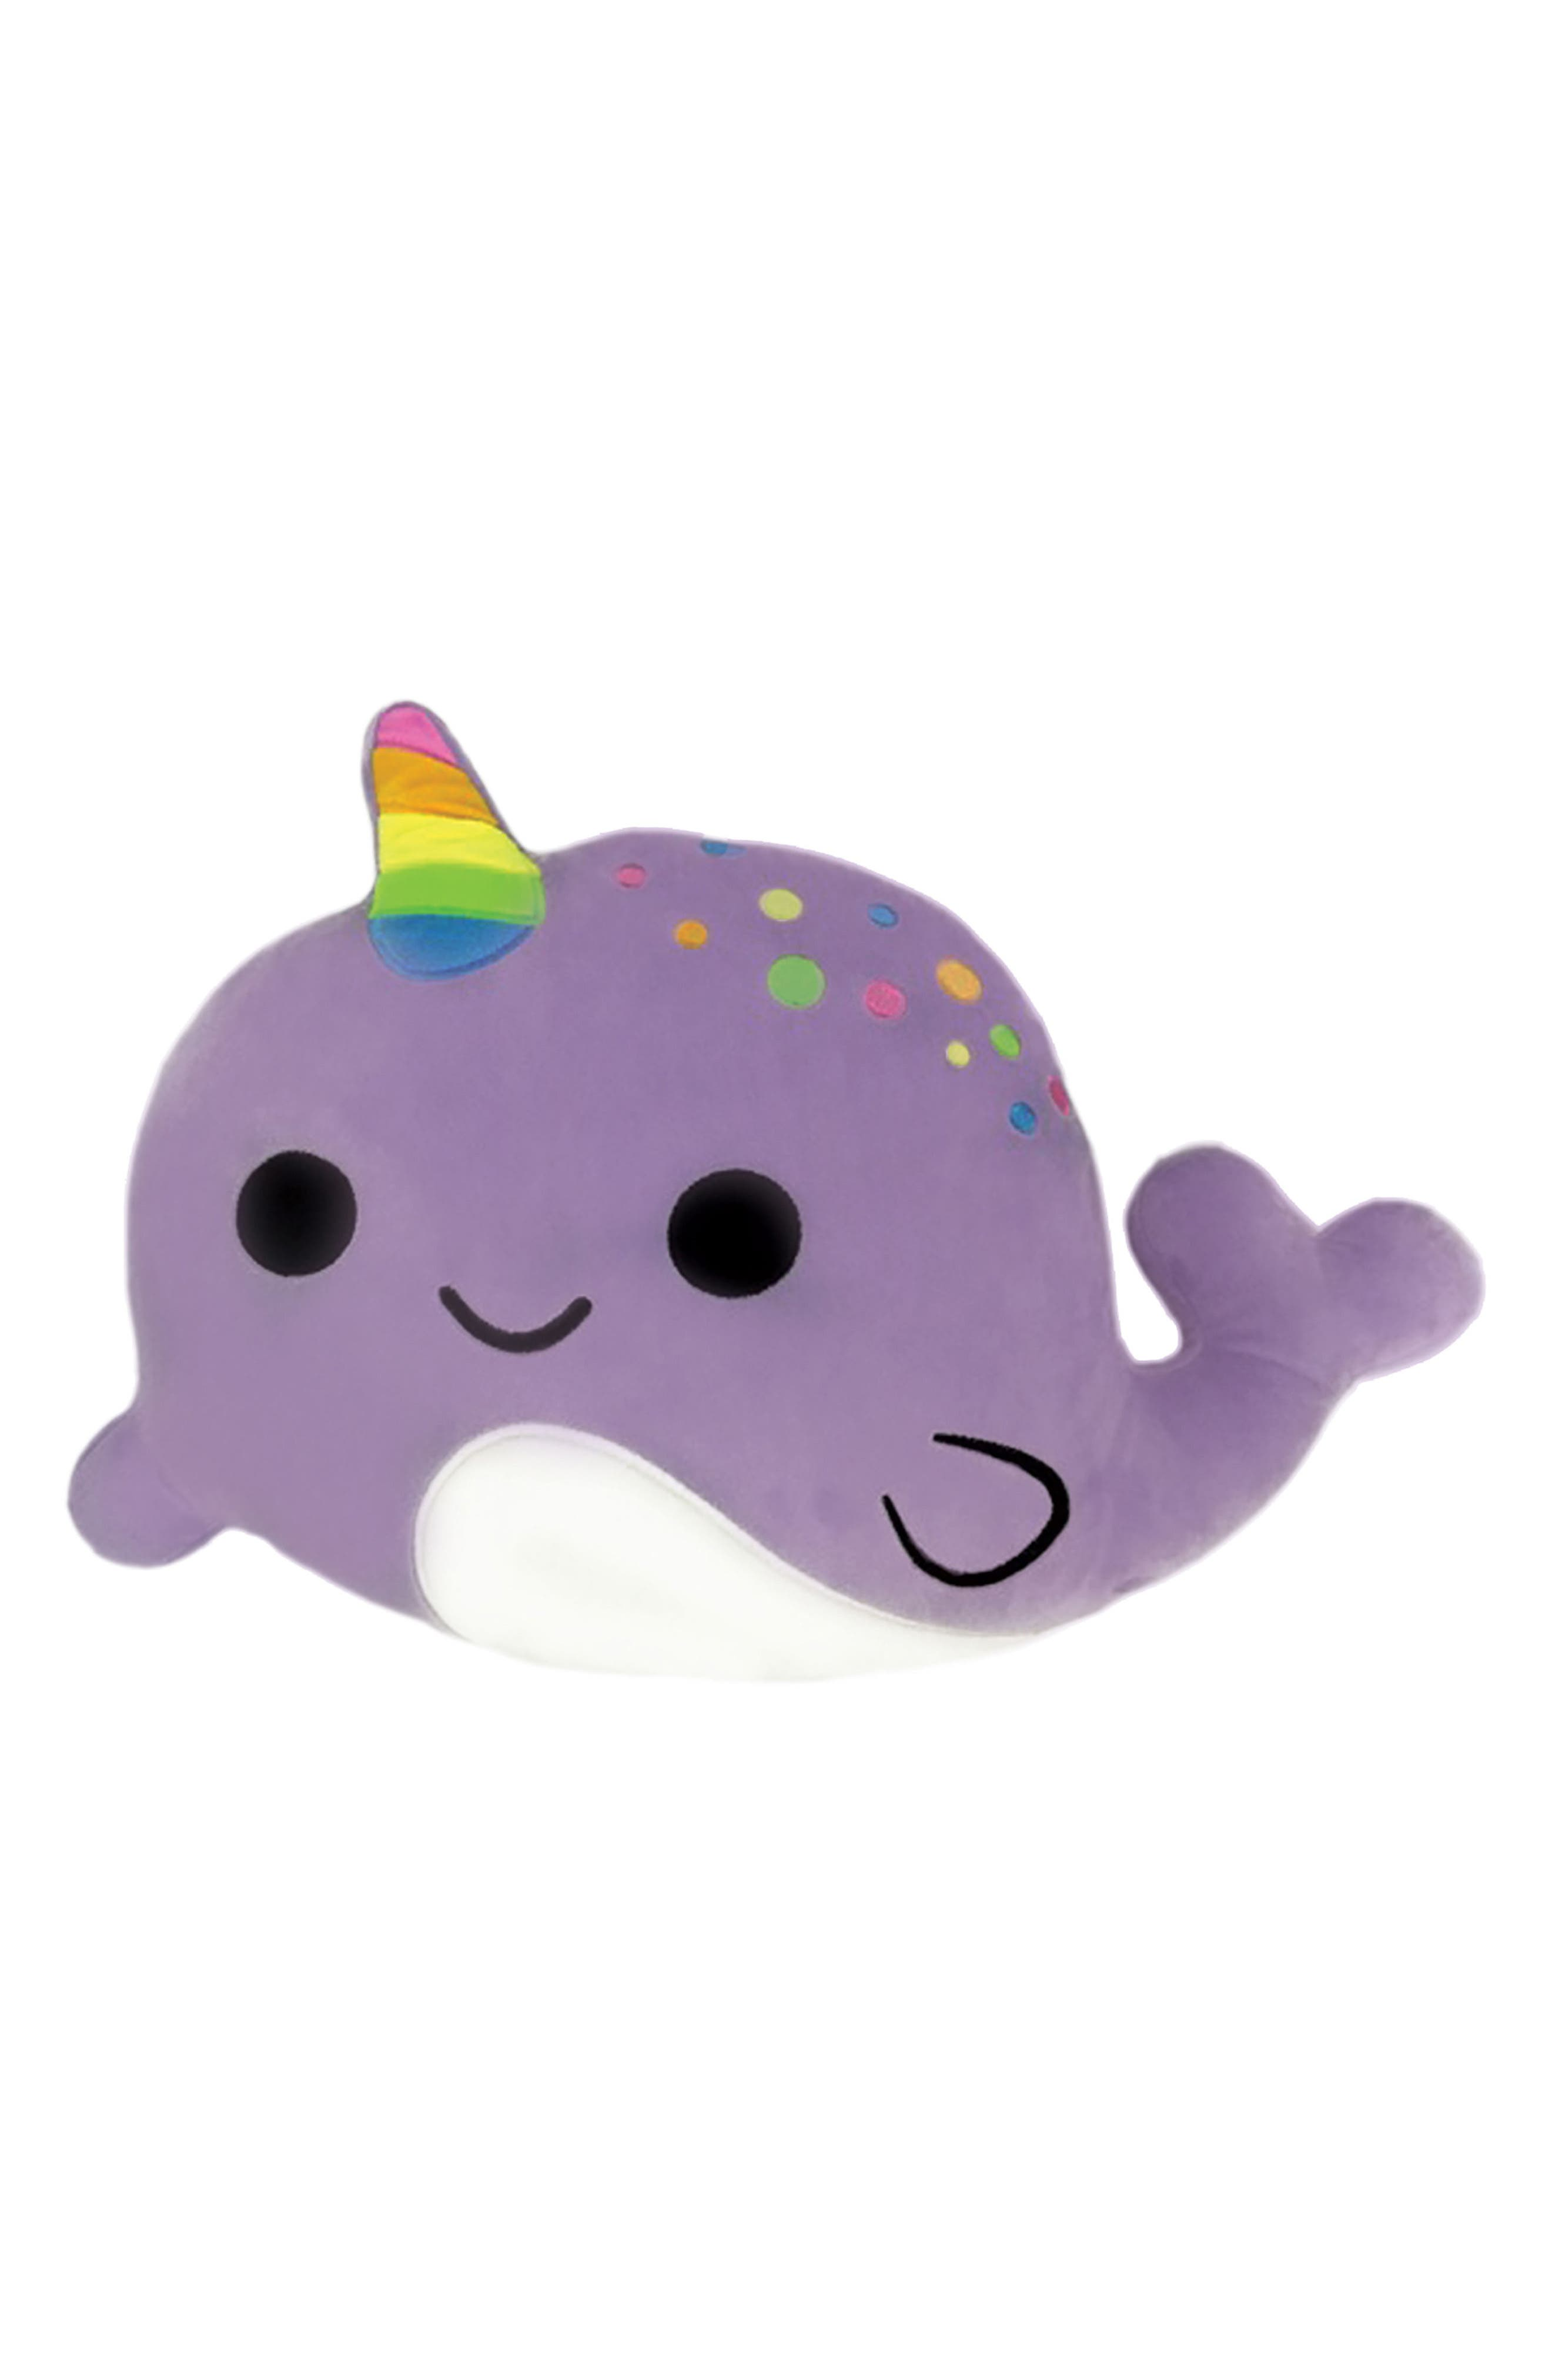 Scented Narwhal Pillow,                             Main thumbnail 1, color,                             Purple